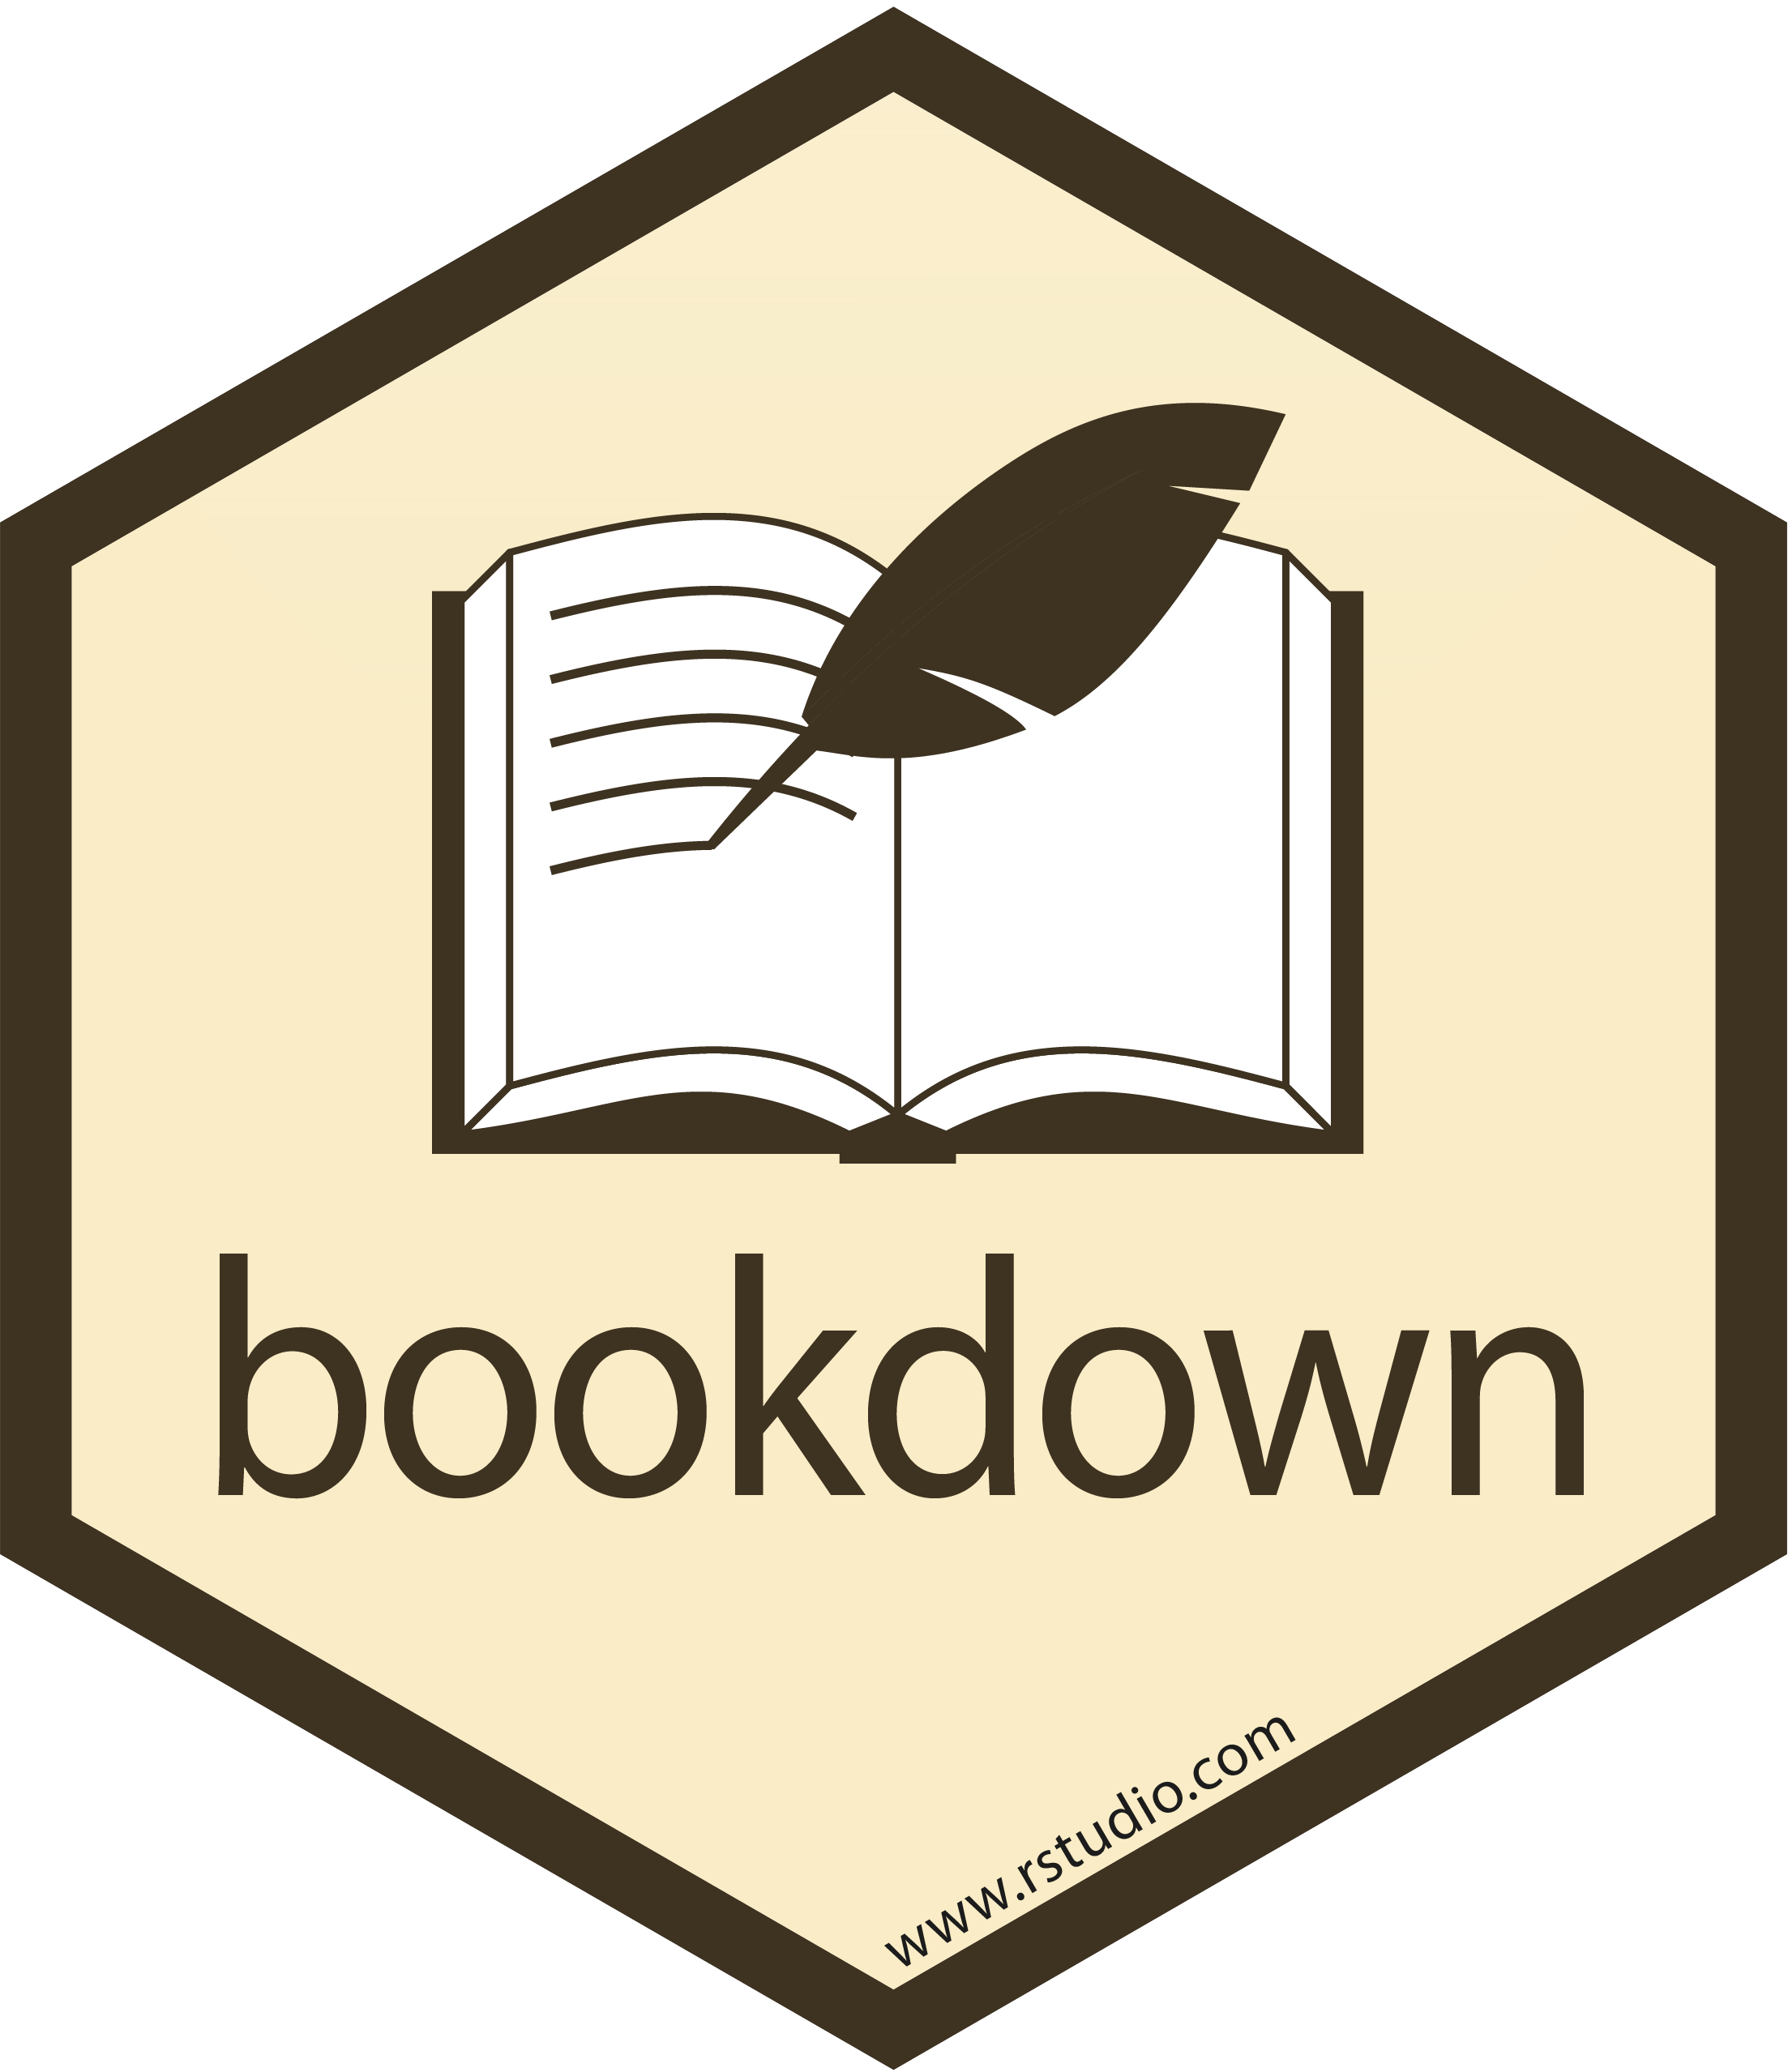 r-cran-bookdown avatar